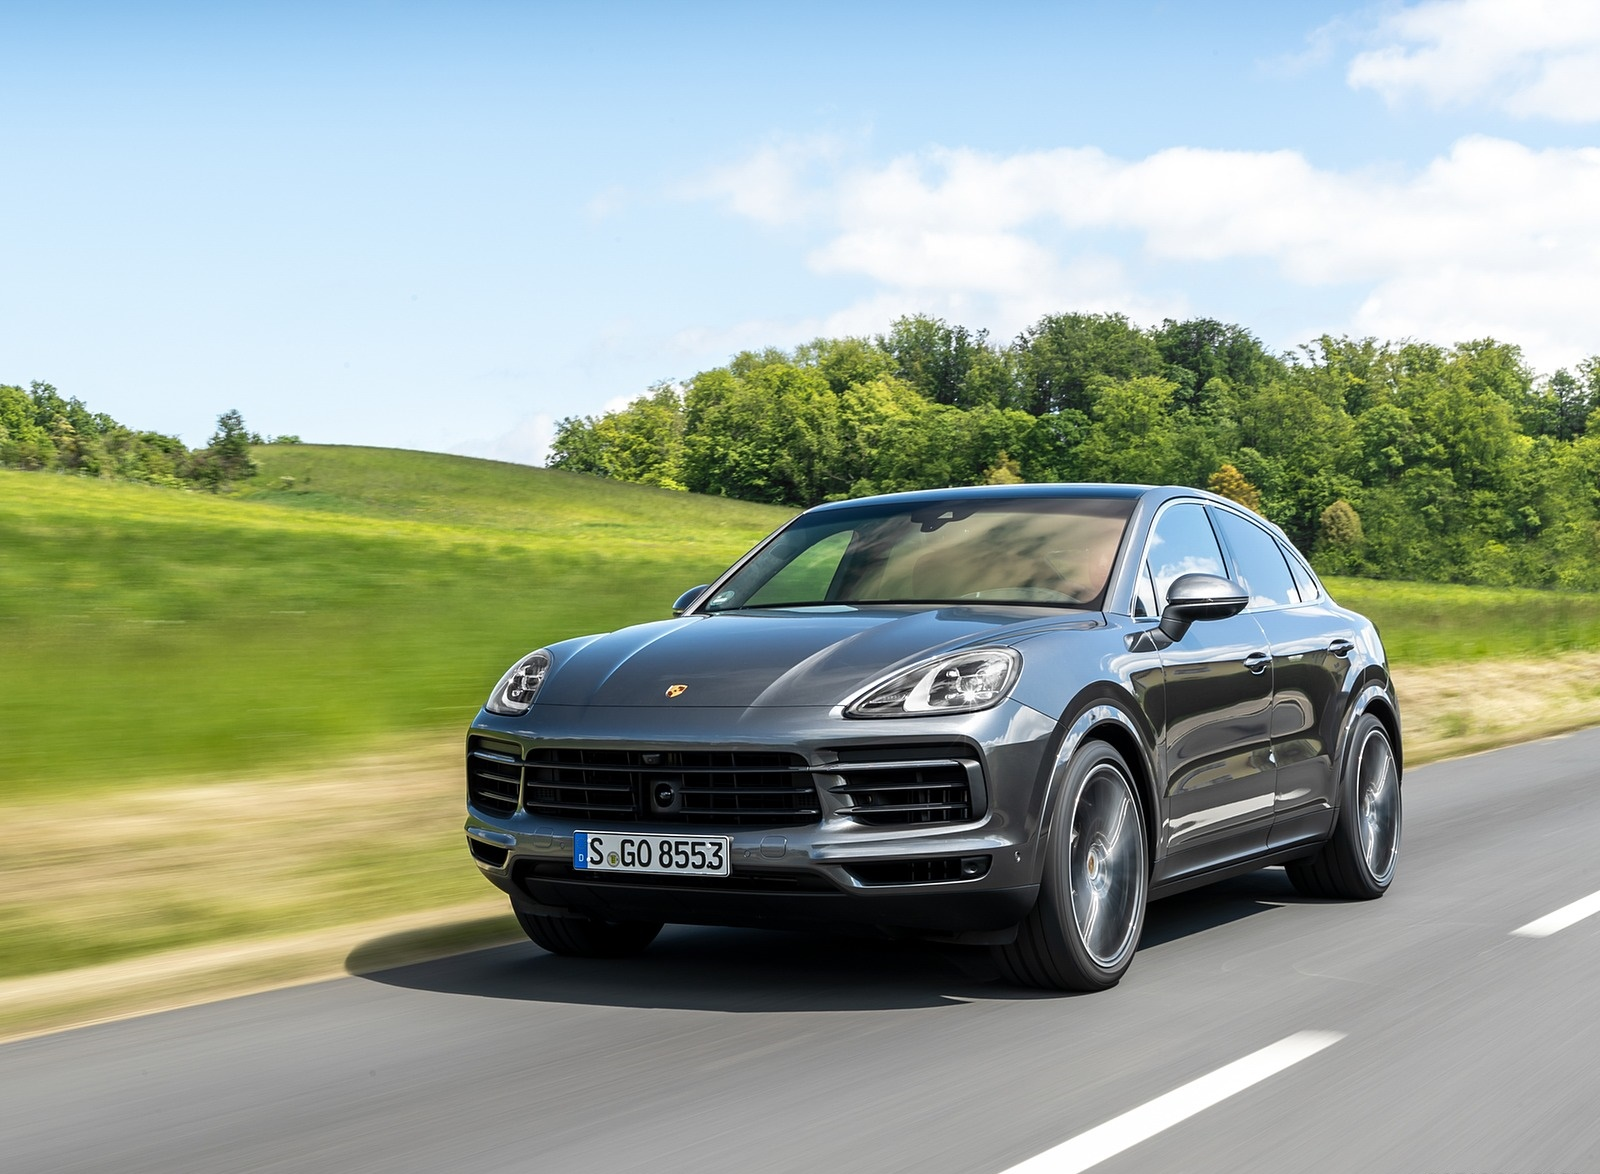 2020 Porsche Cayenne: Coupe Version, Design, Specs >> 2020 Porsche Cayenne Coupe Wallpapers 212 Hd Images Newcarcars